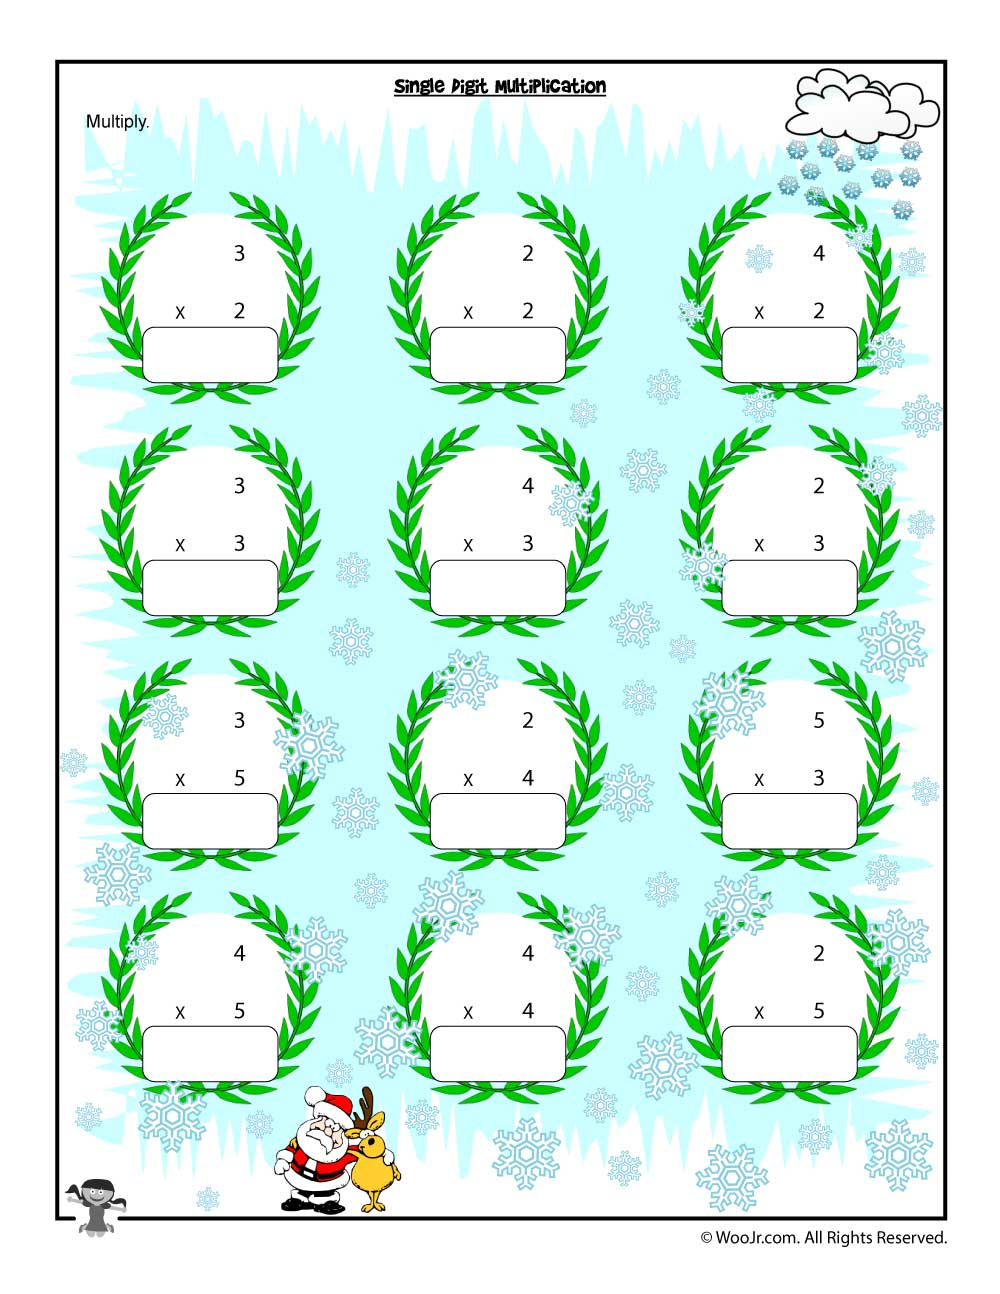 Single Digit Christmas Multiplication Worksheet | Woo! Jr. Kids ...